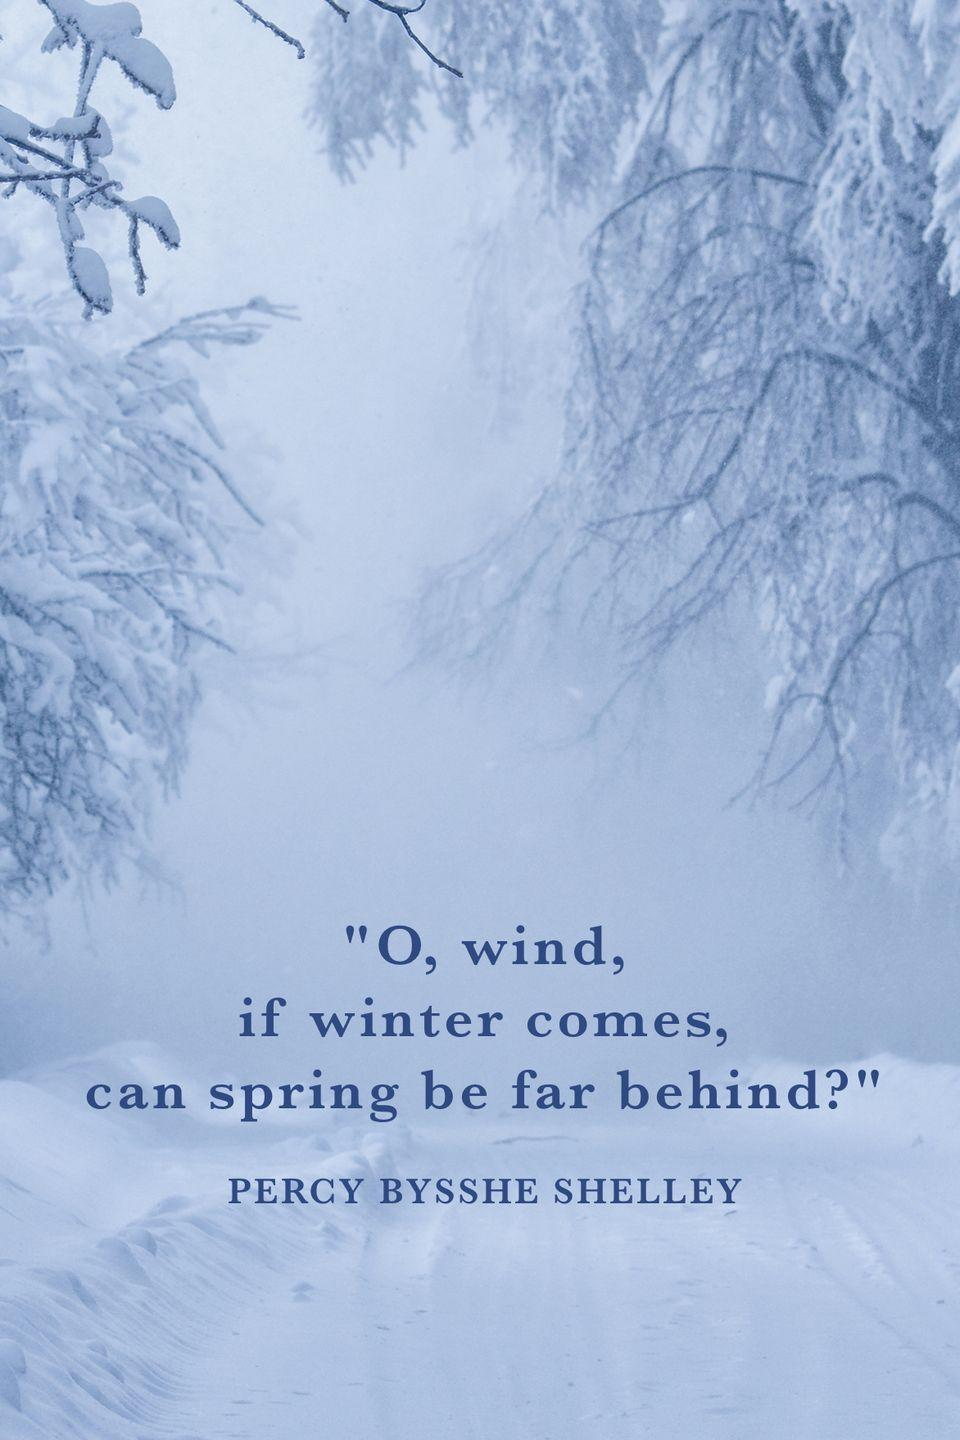 "<p>""O, wind, if winter comes, can spring be far behind?""</p>"